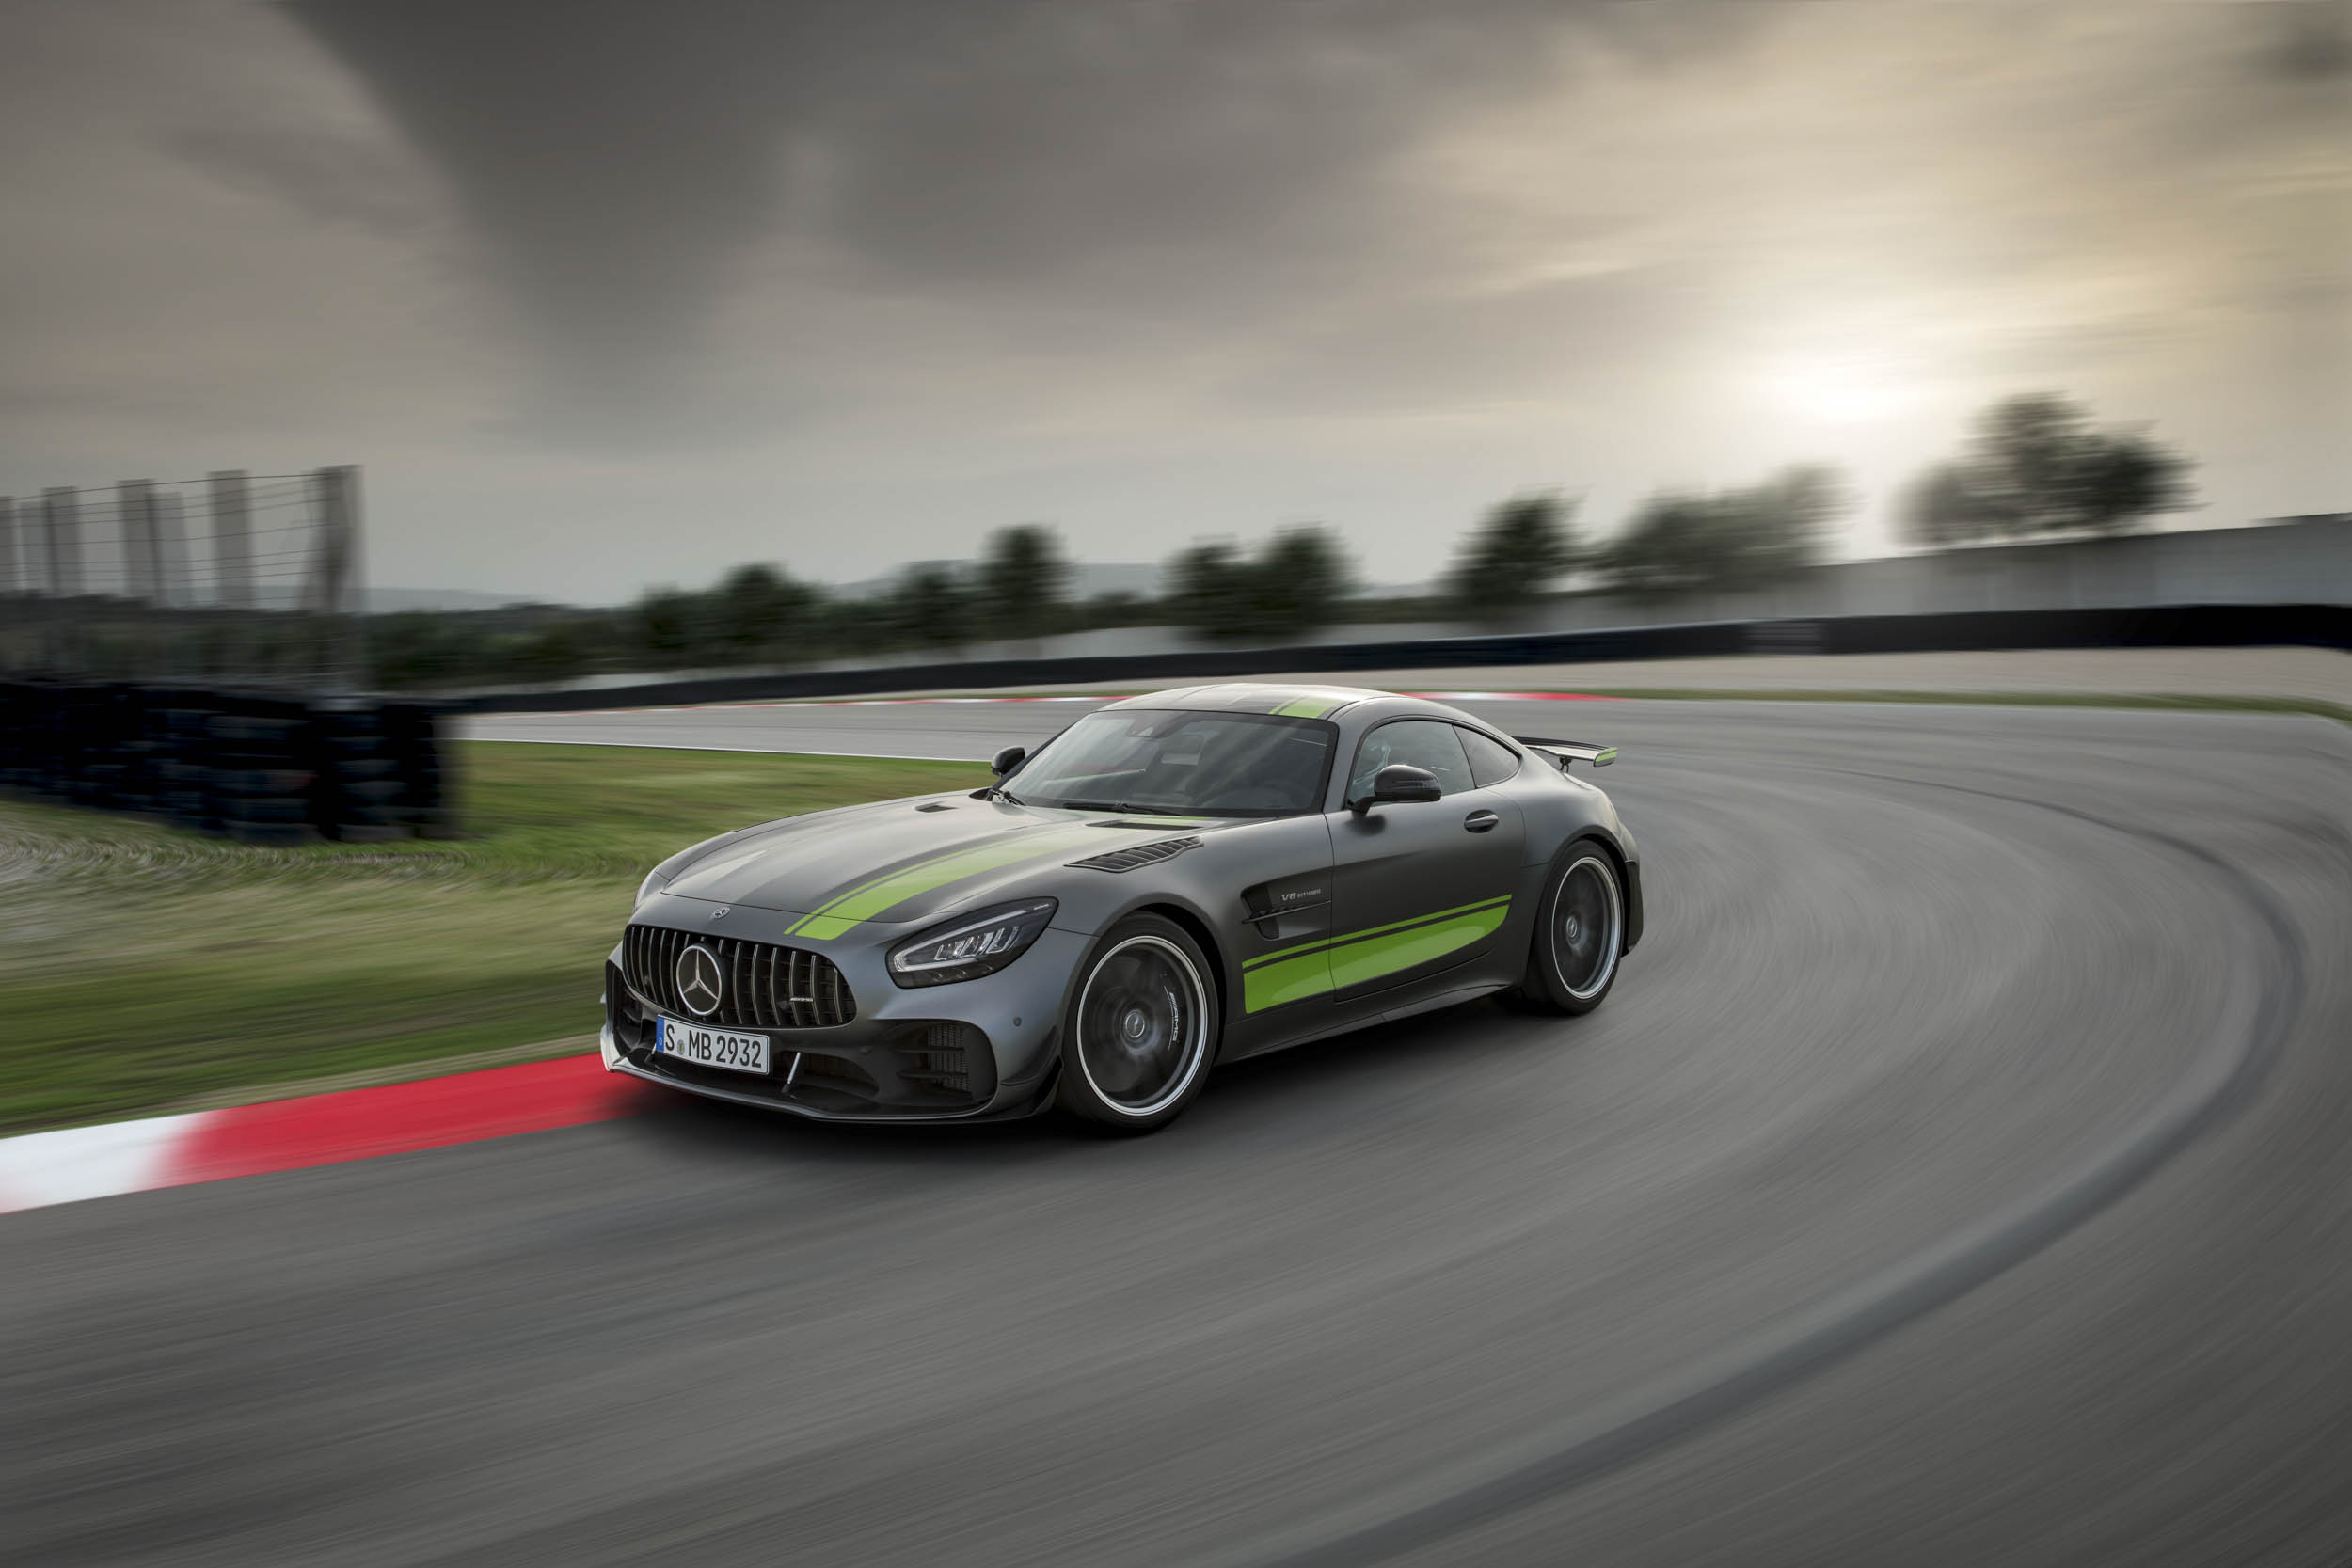 Mercedes-AMG GT R Pro turning right on the track